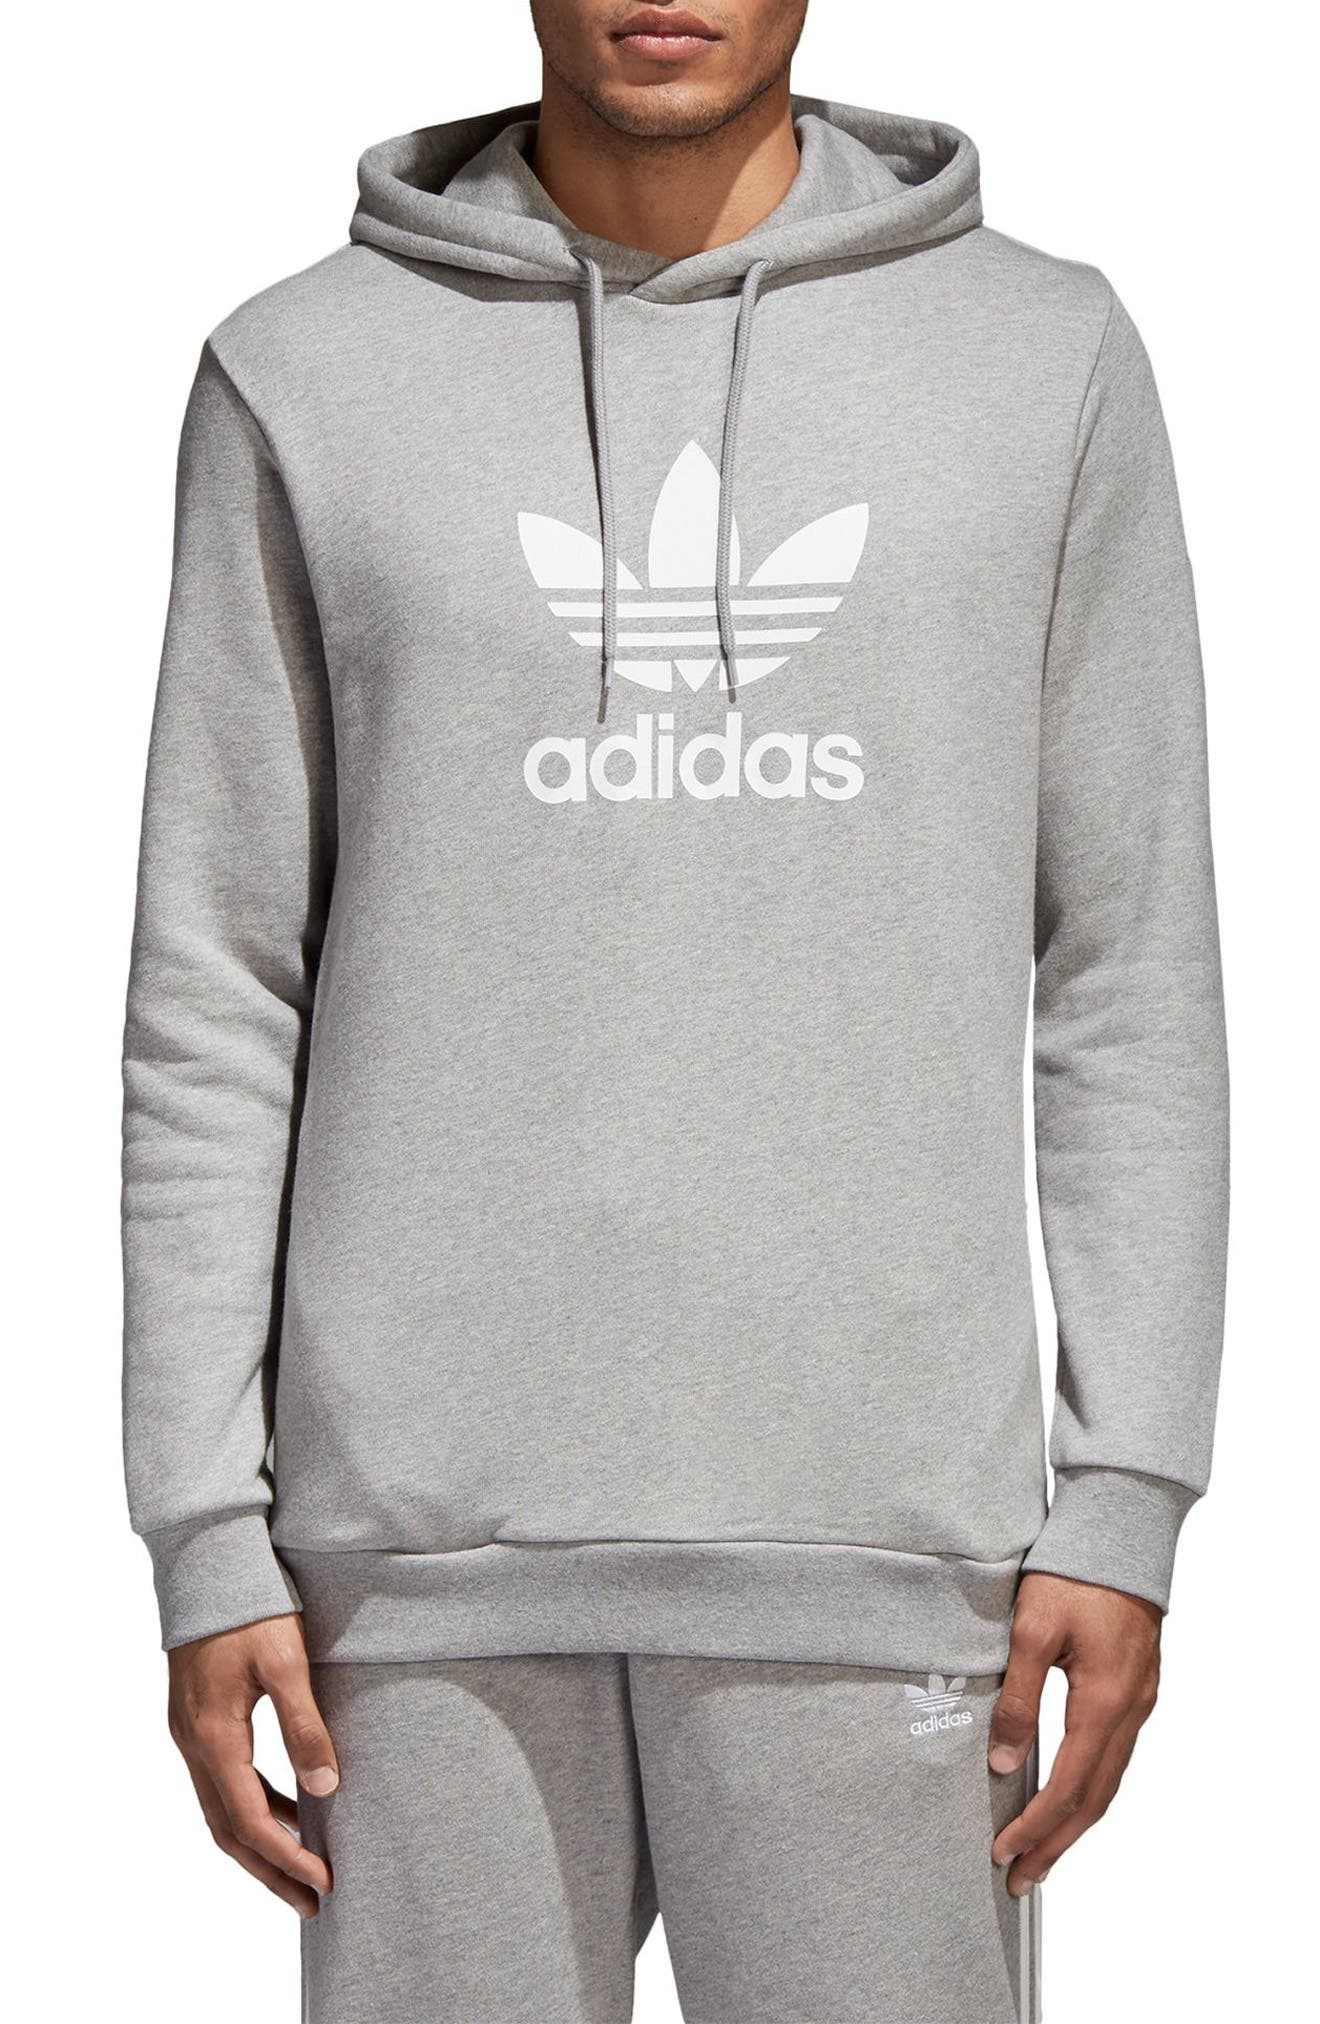 ADIDAS ORIGINALS,                             Trefoil Warm-Up Hoodie,                             Main thumbnail 1, color,                             035